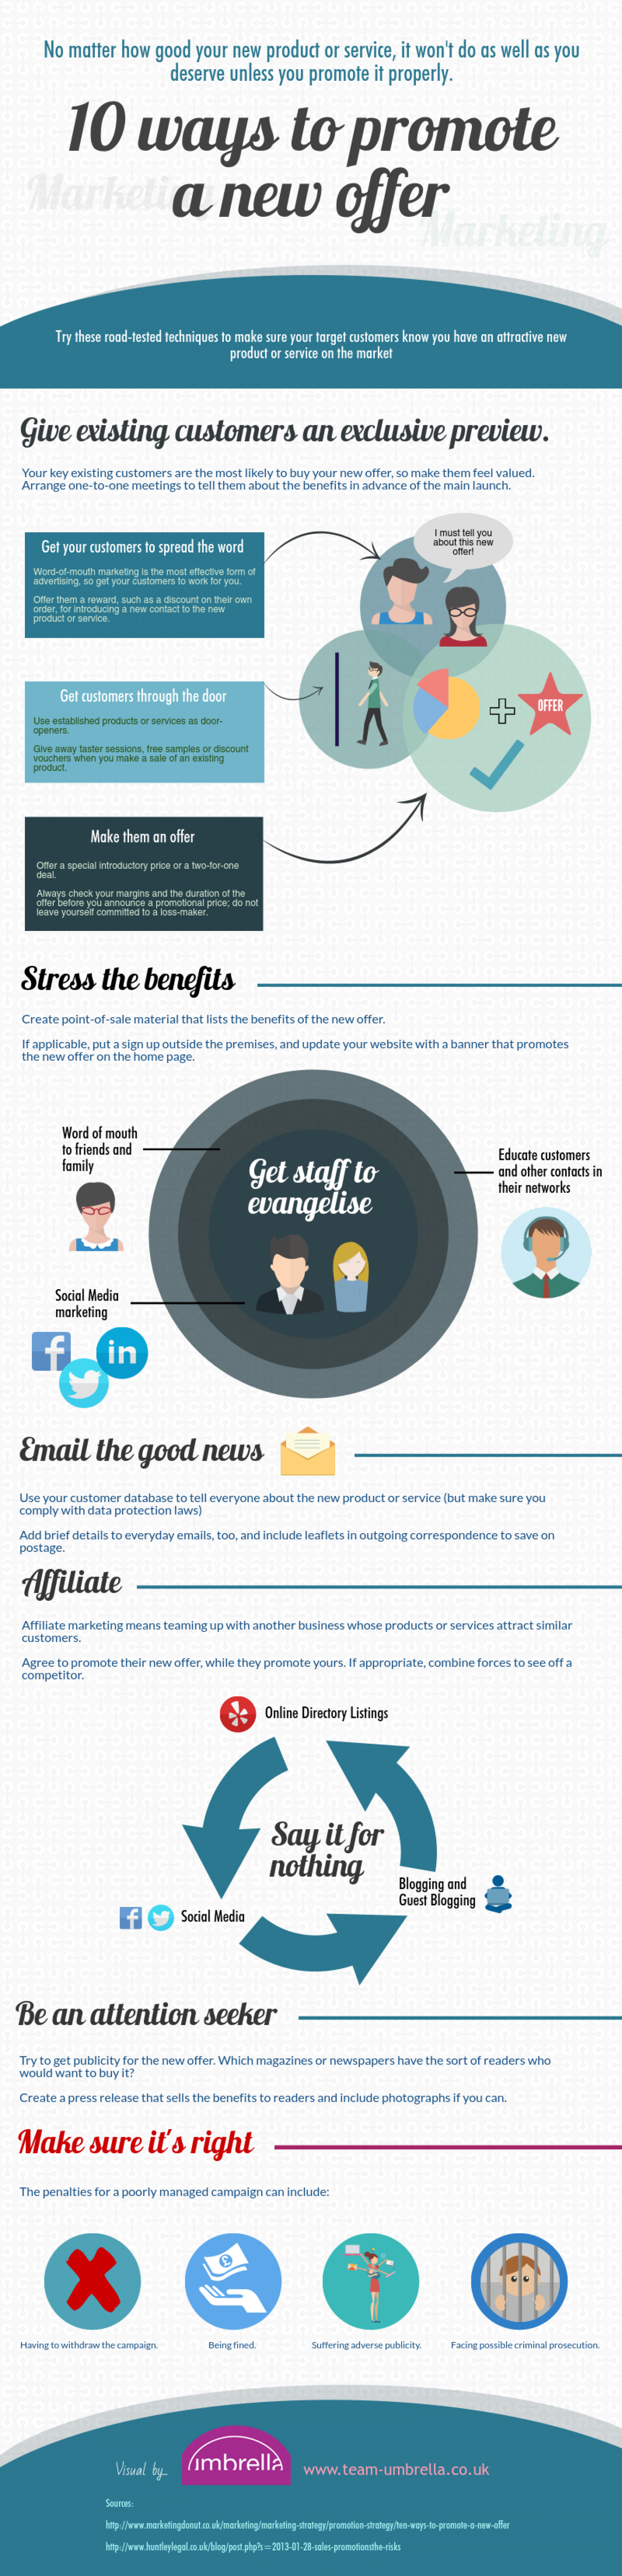 10 Ways To Promote Your New Offer Infographic